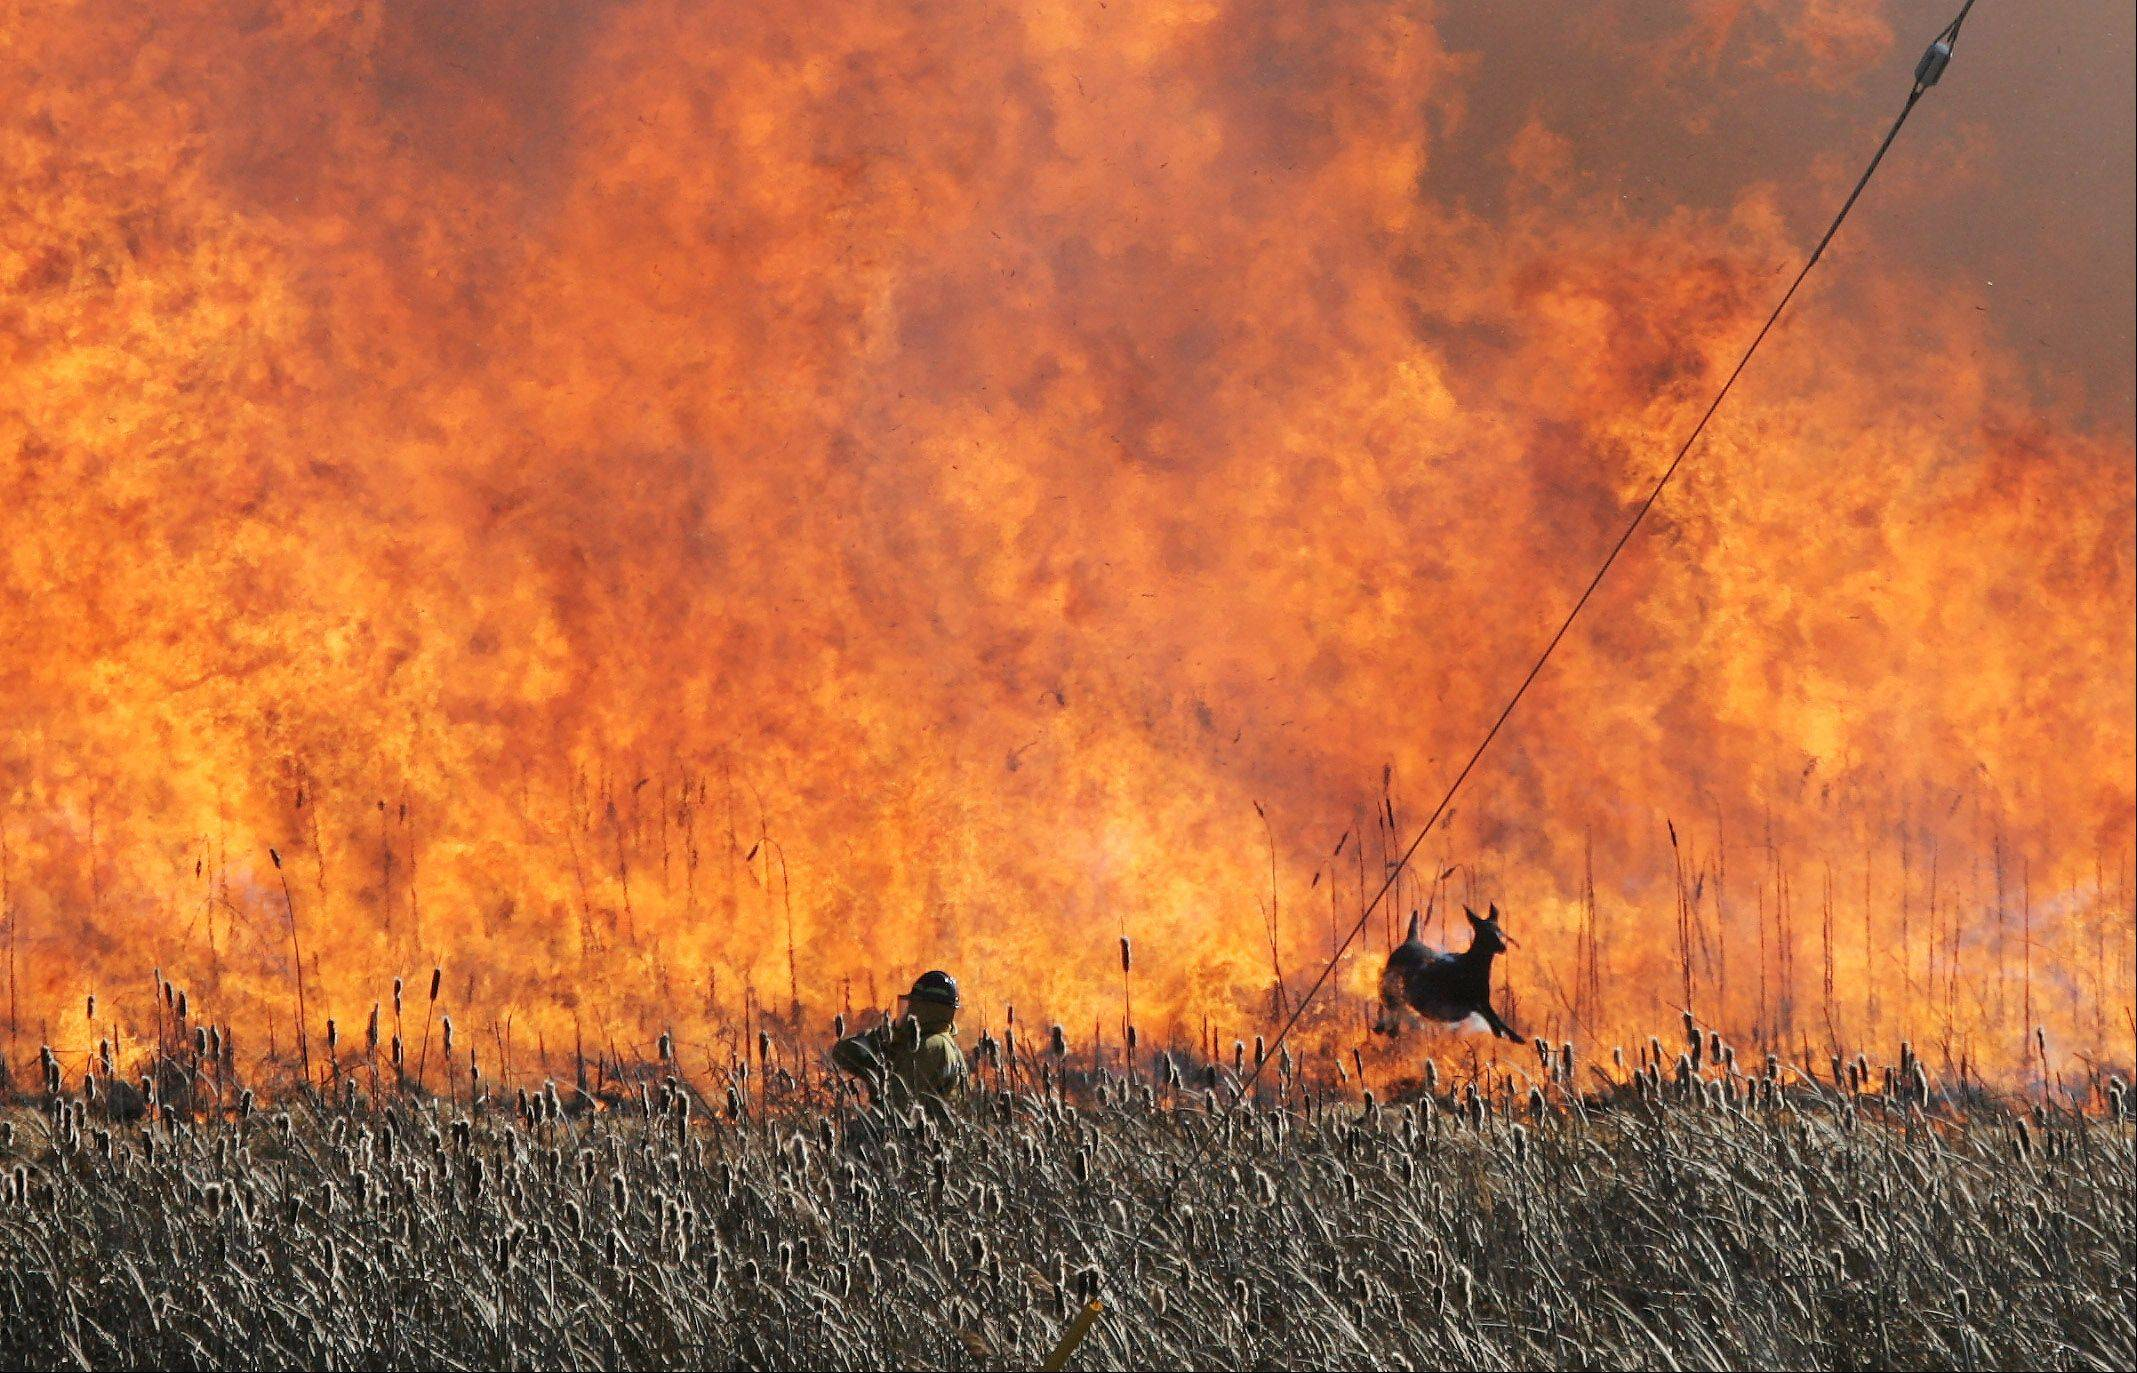 A deer runs past a worker as the Lake County Forest Preserve conducted a controlled burn Wednesday in the wetland at Lakewood Forest Preserve near Wauconda. According to Dave Cassin, assistant superintendent of natural resource operations, the operation was to burn off vegetation detritus and to open the area to sunlight for growth of natural vegetation.